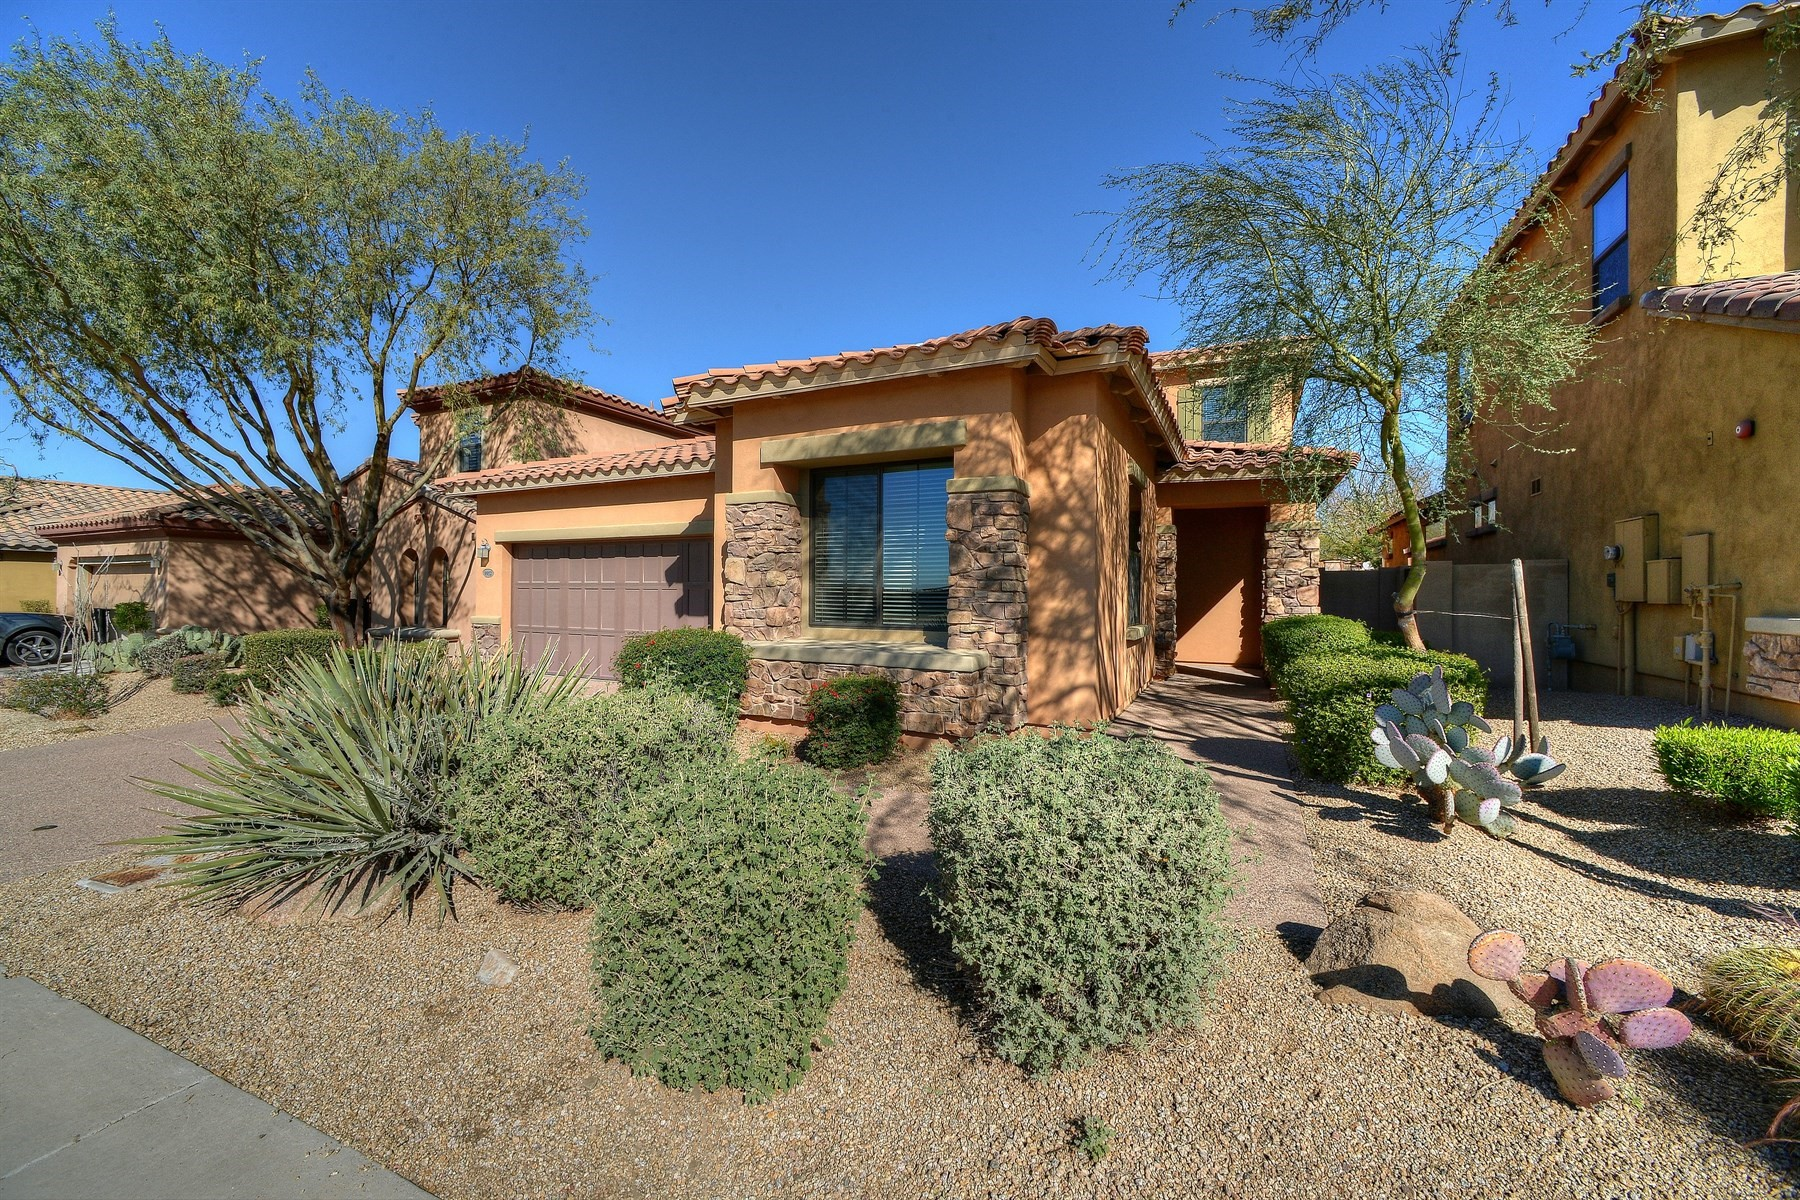 Casa Unifamiliar por un Venta en Exceptional Home in the gated Windgate Ranch 9952 E South Bend Dr Scottsdale, Arizona, 85255 Estados Unidos